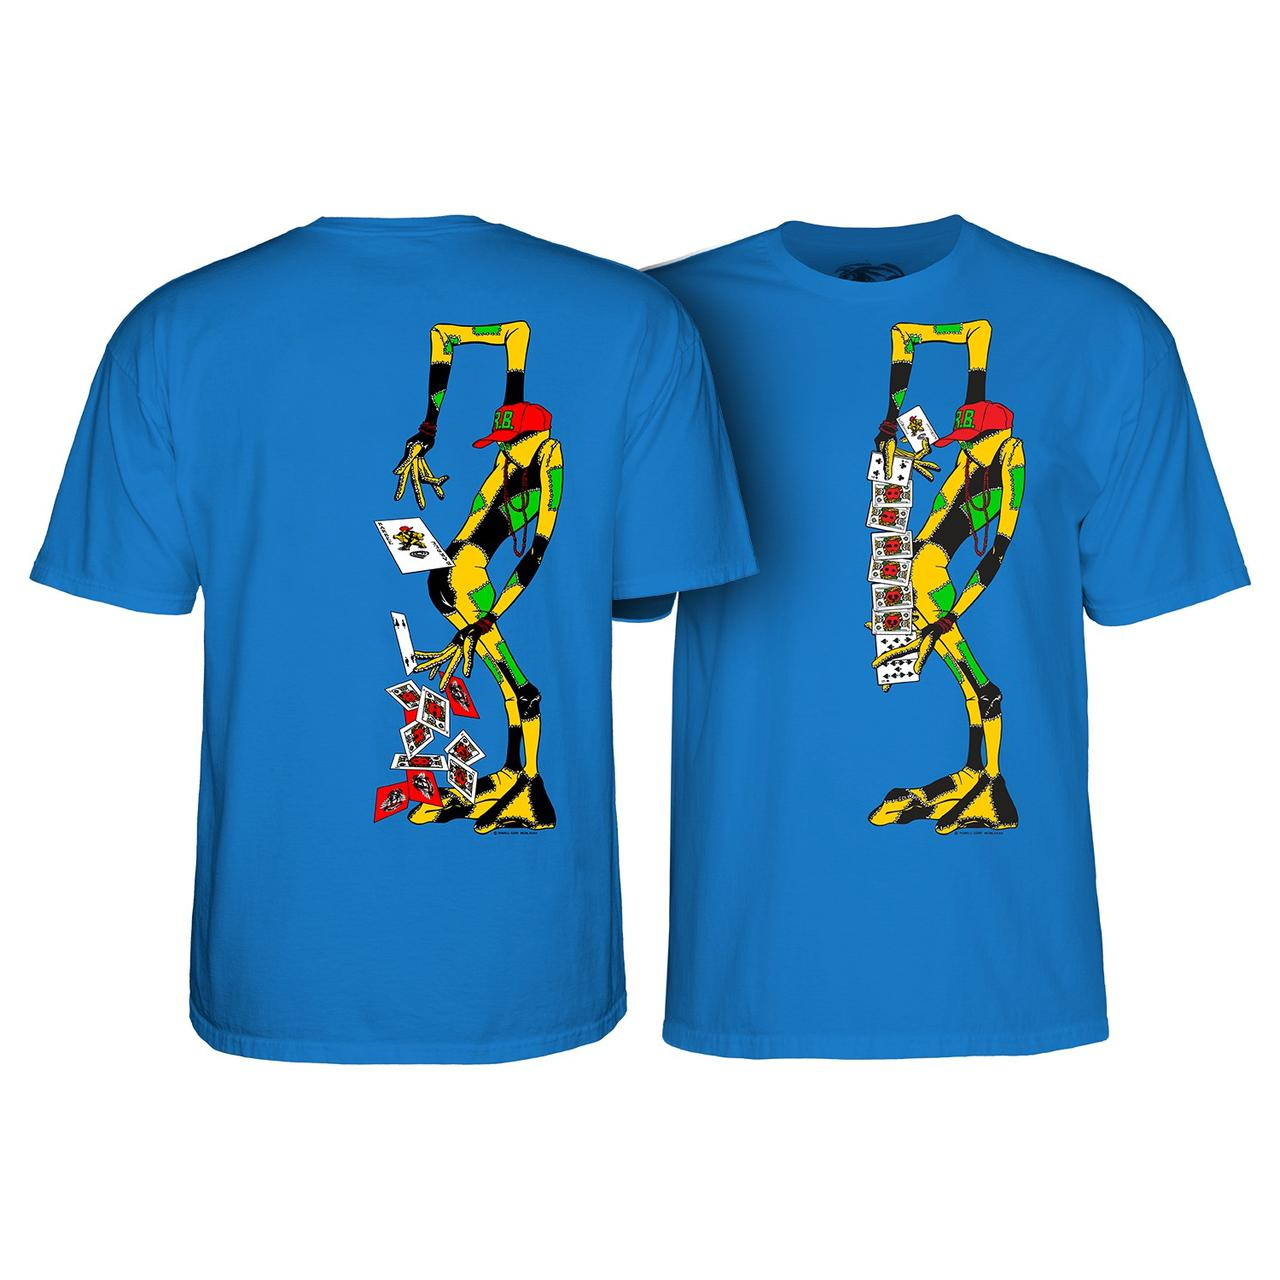 TEE RAY BARBEE ROYAL BLUE POWELL PERALTA